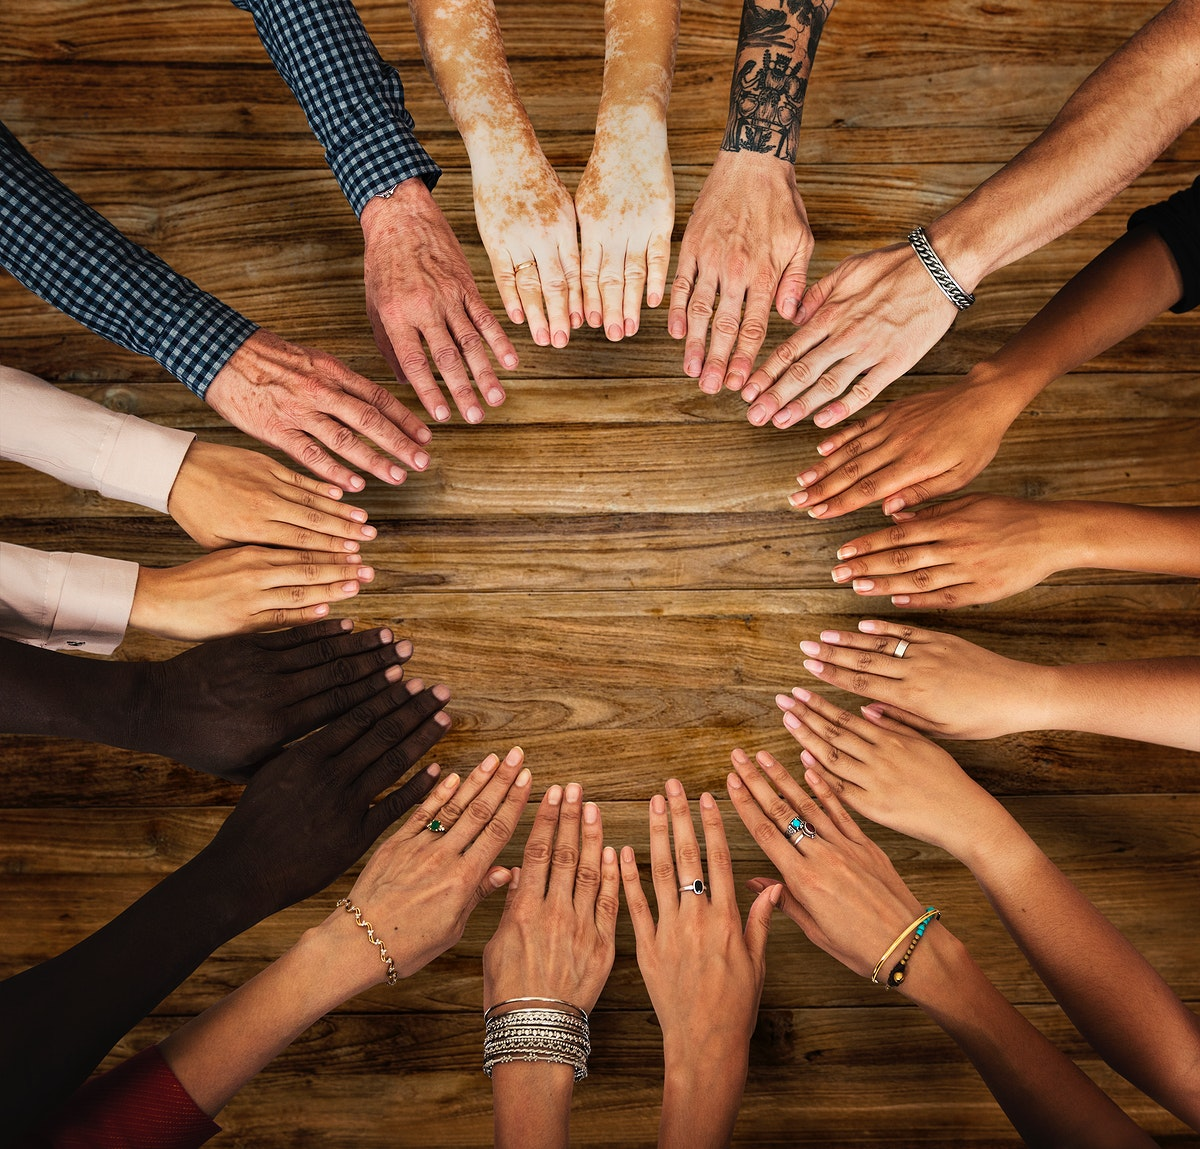 Group of hands assemble in aerial view